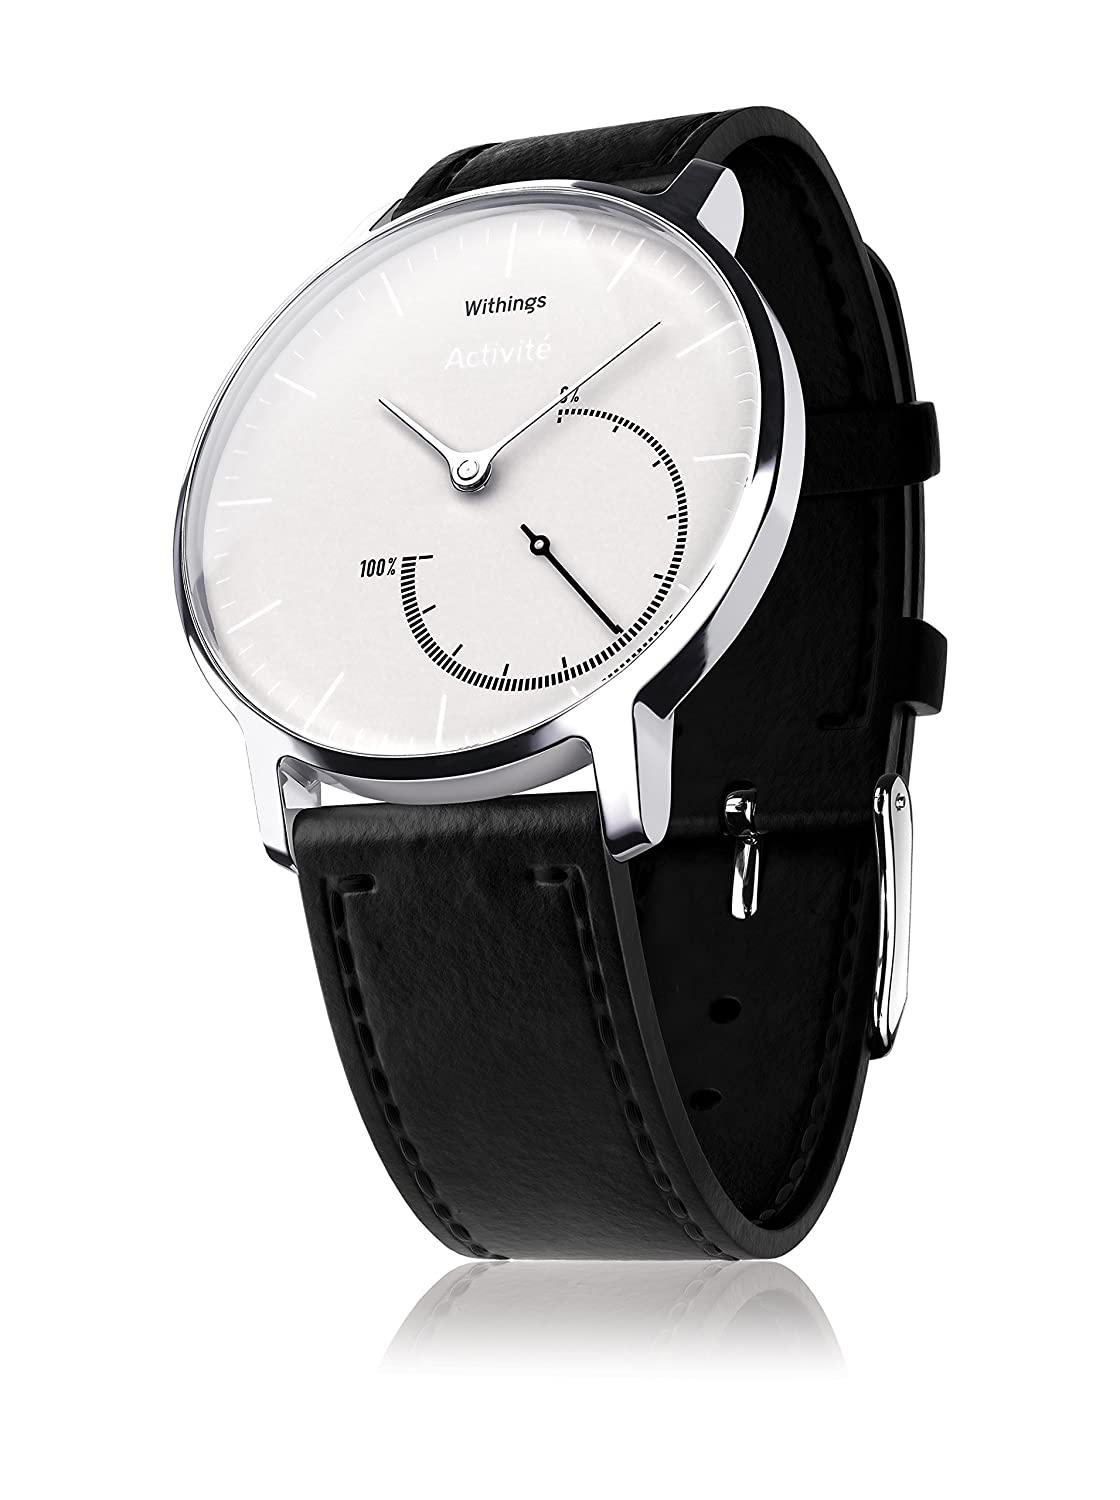 Withings -  -Armbanduhr- 3700546701795_Black